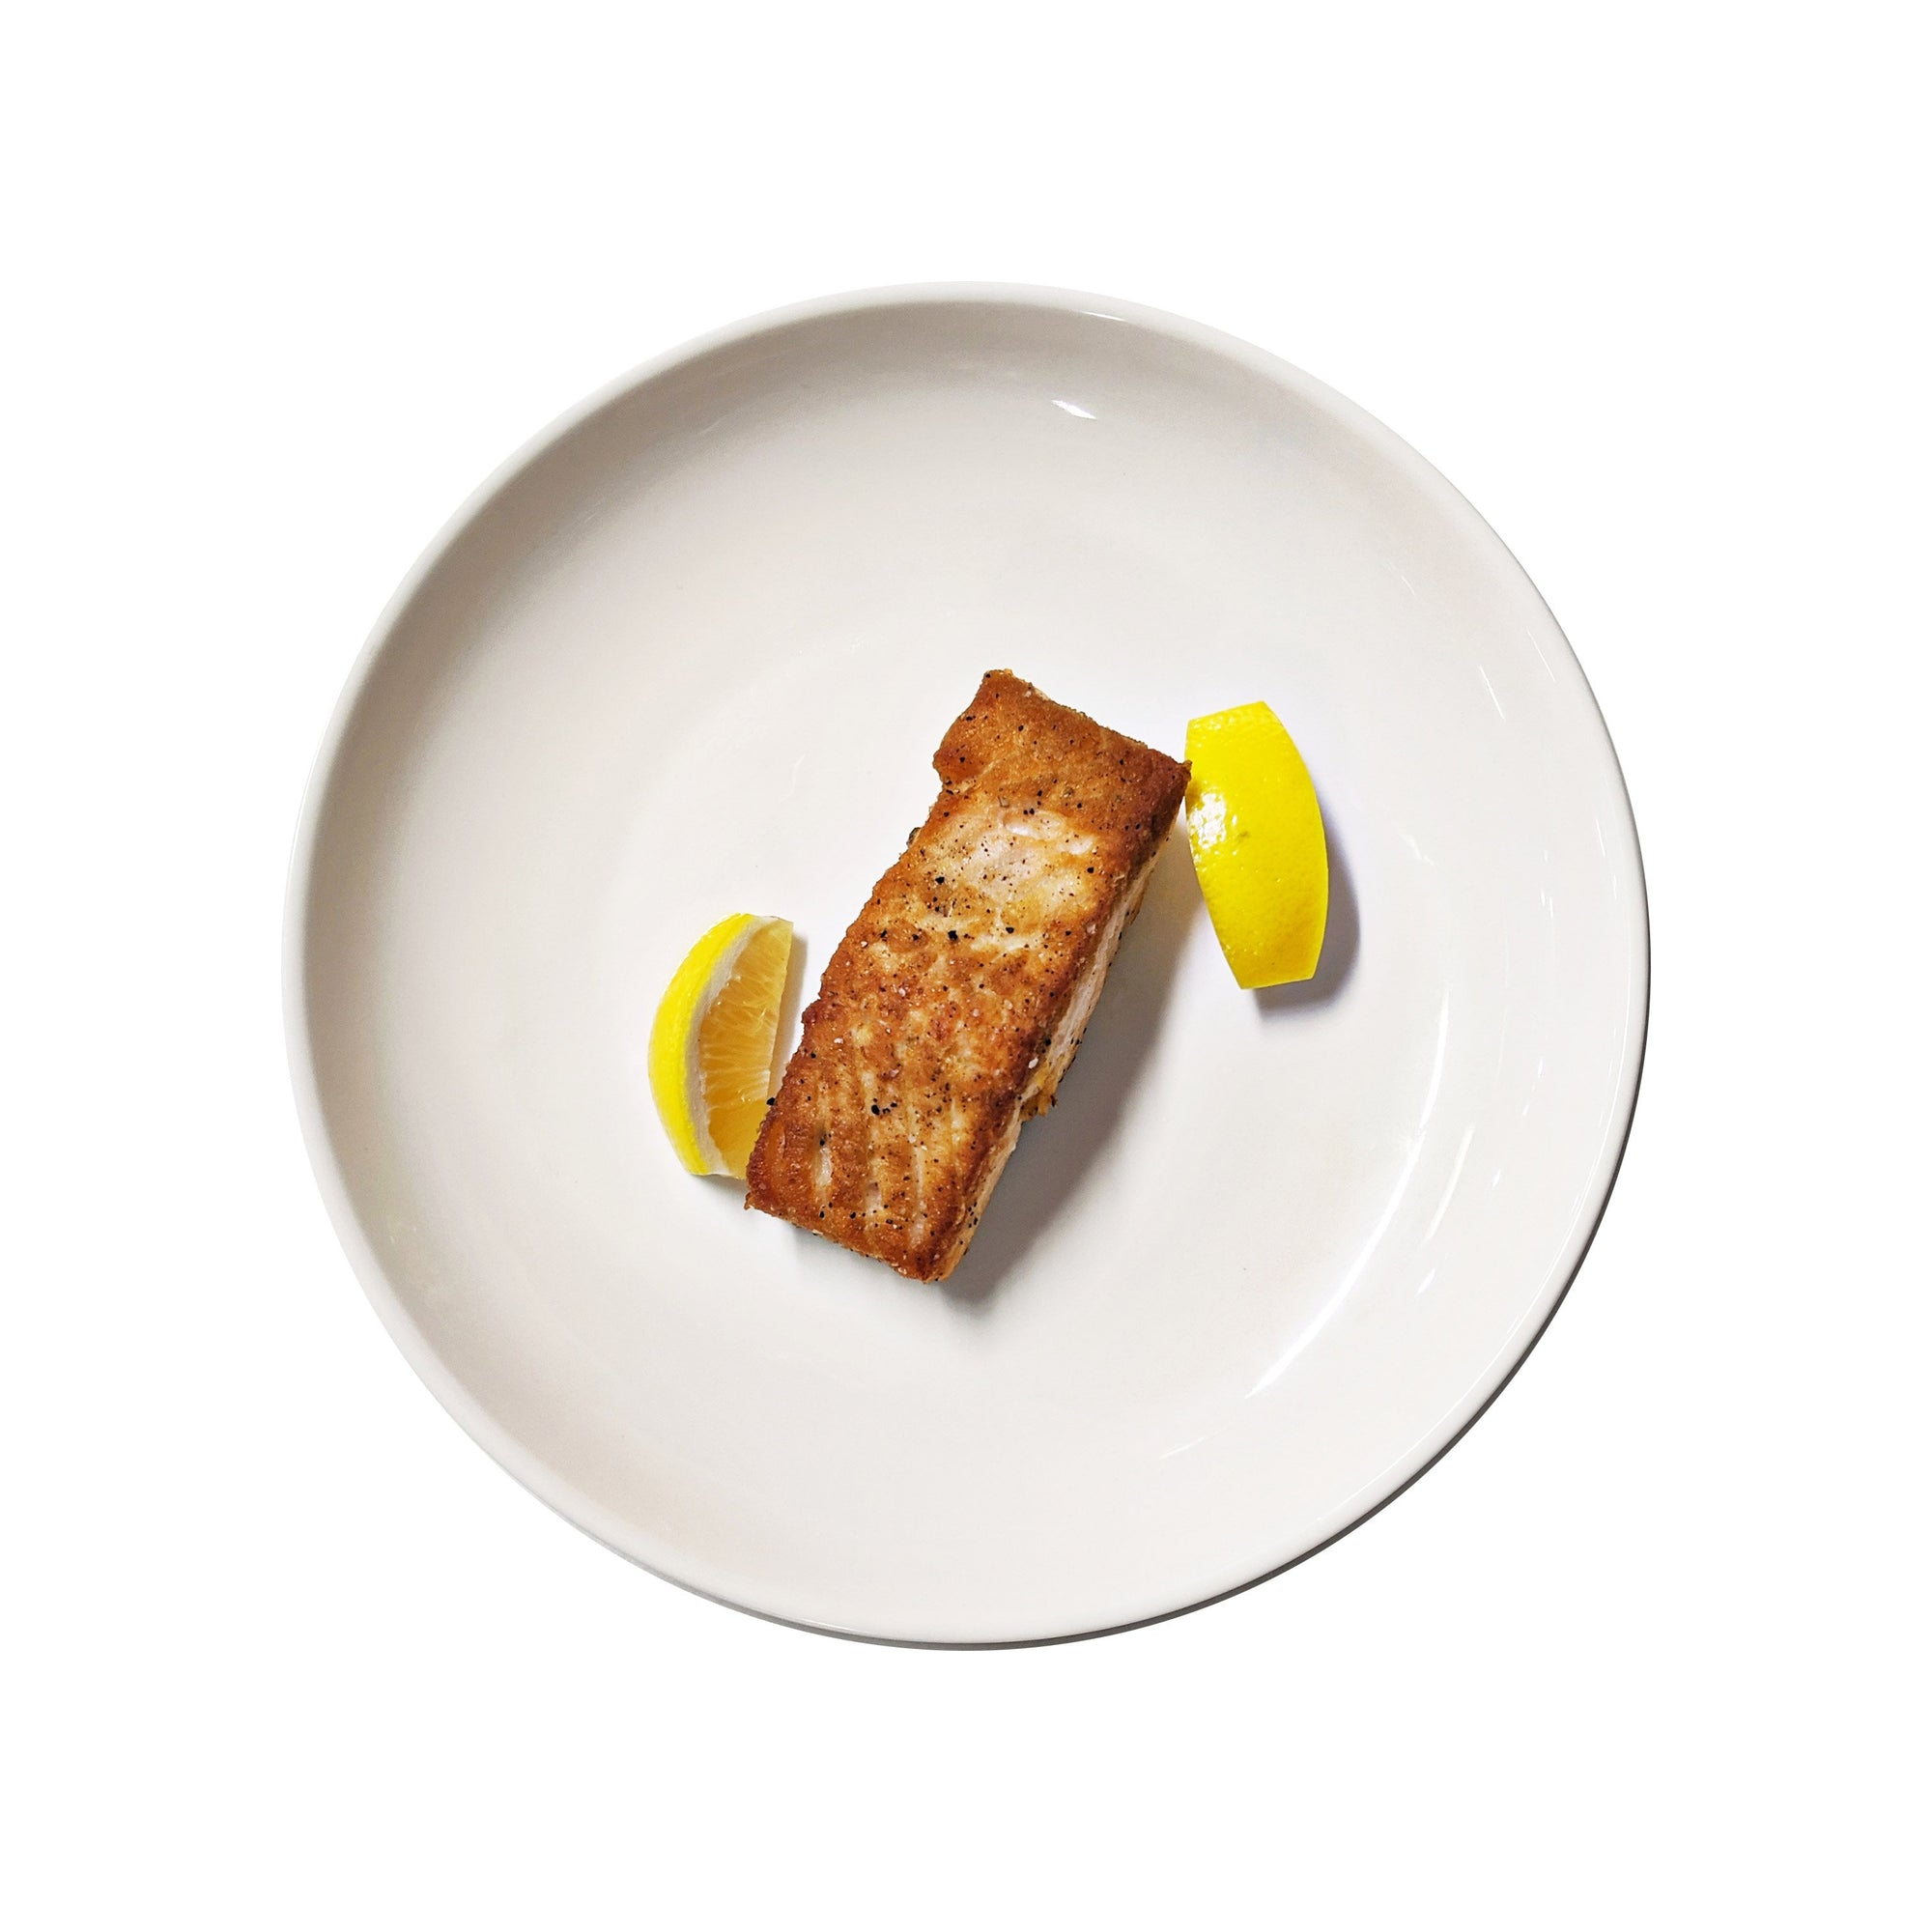 Wild Salmon with a Lemon Wedge